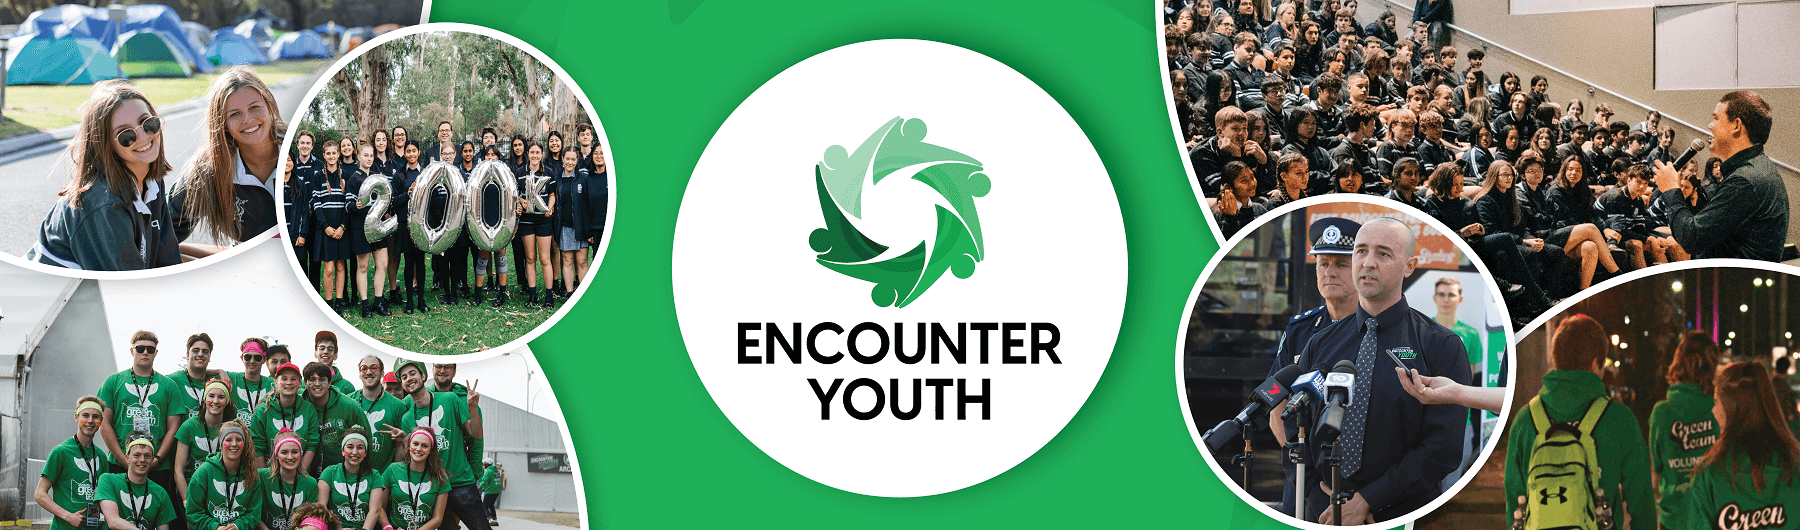 Encounter Youth Privacy Policy